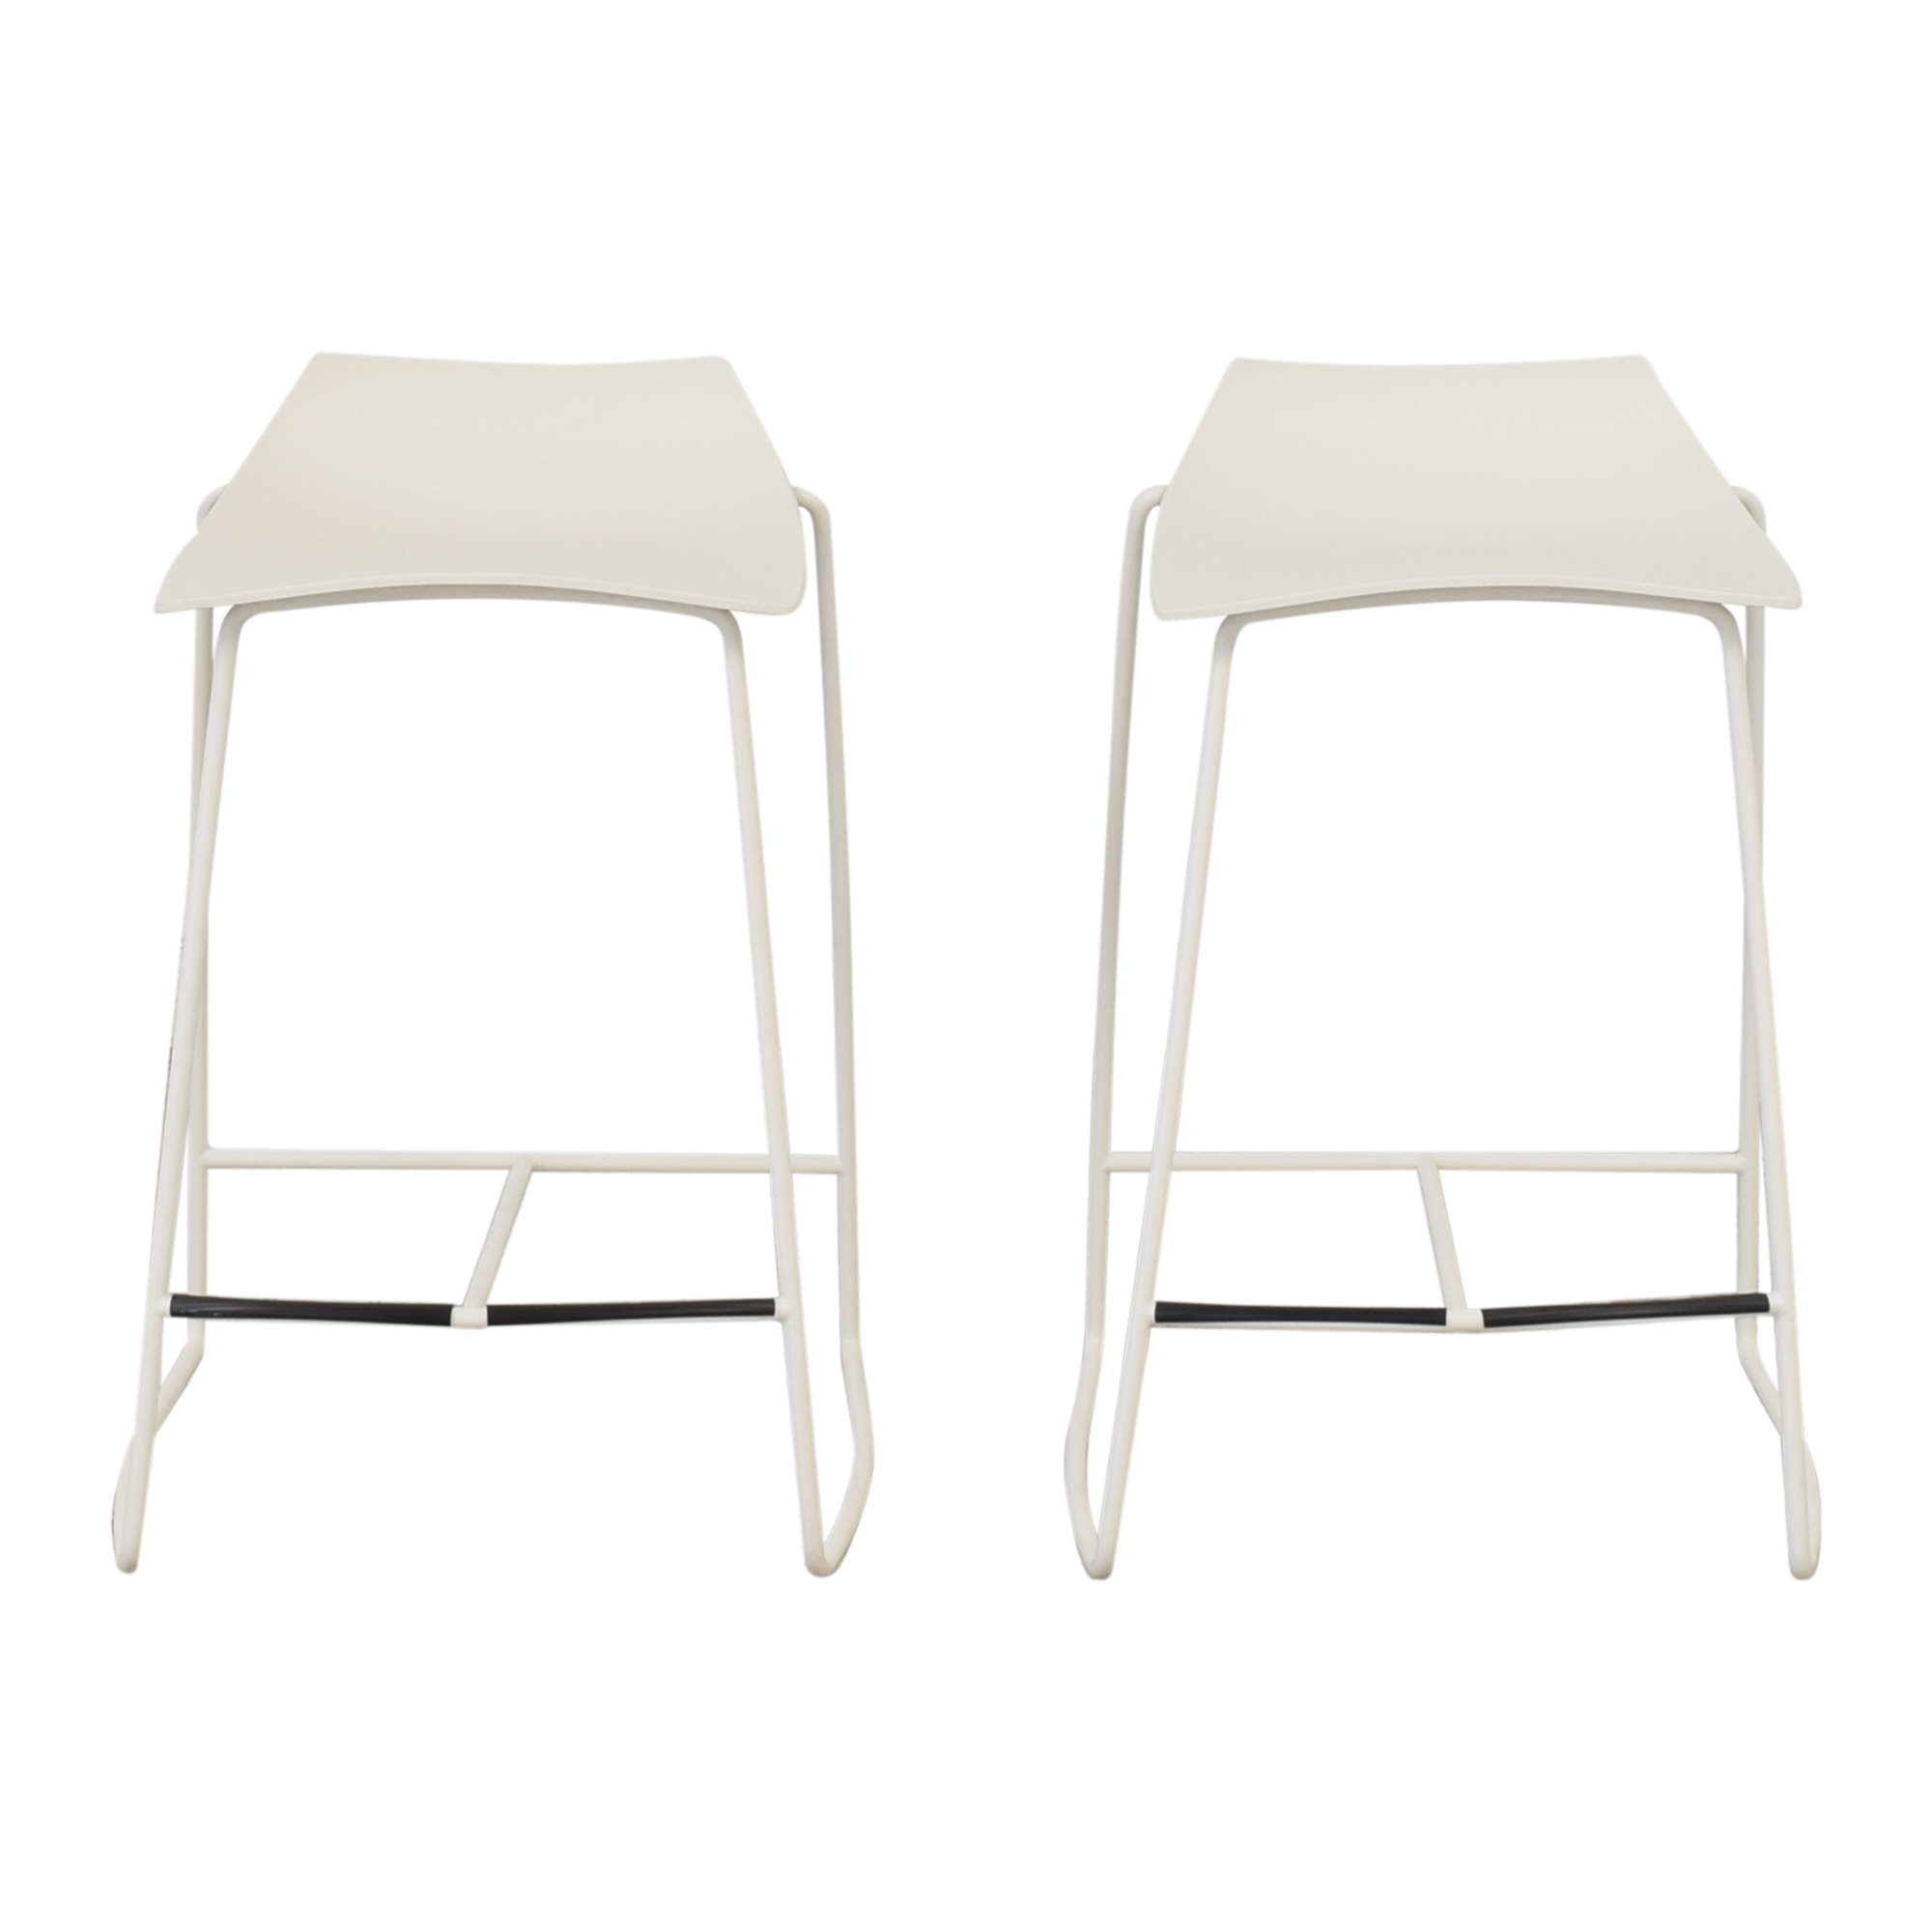 Room & Board Room & Board by HOOP Counter Stool in White Chairs